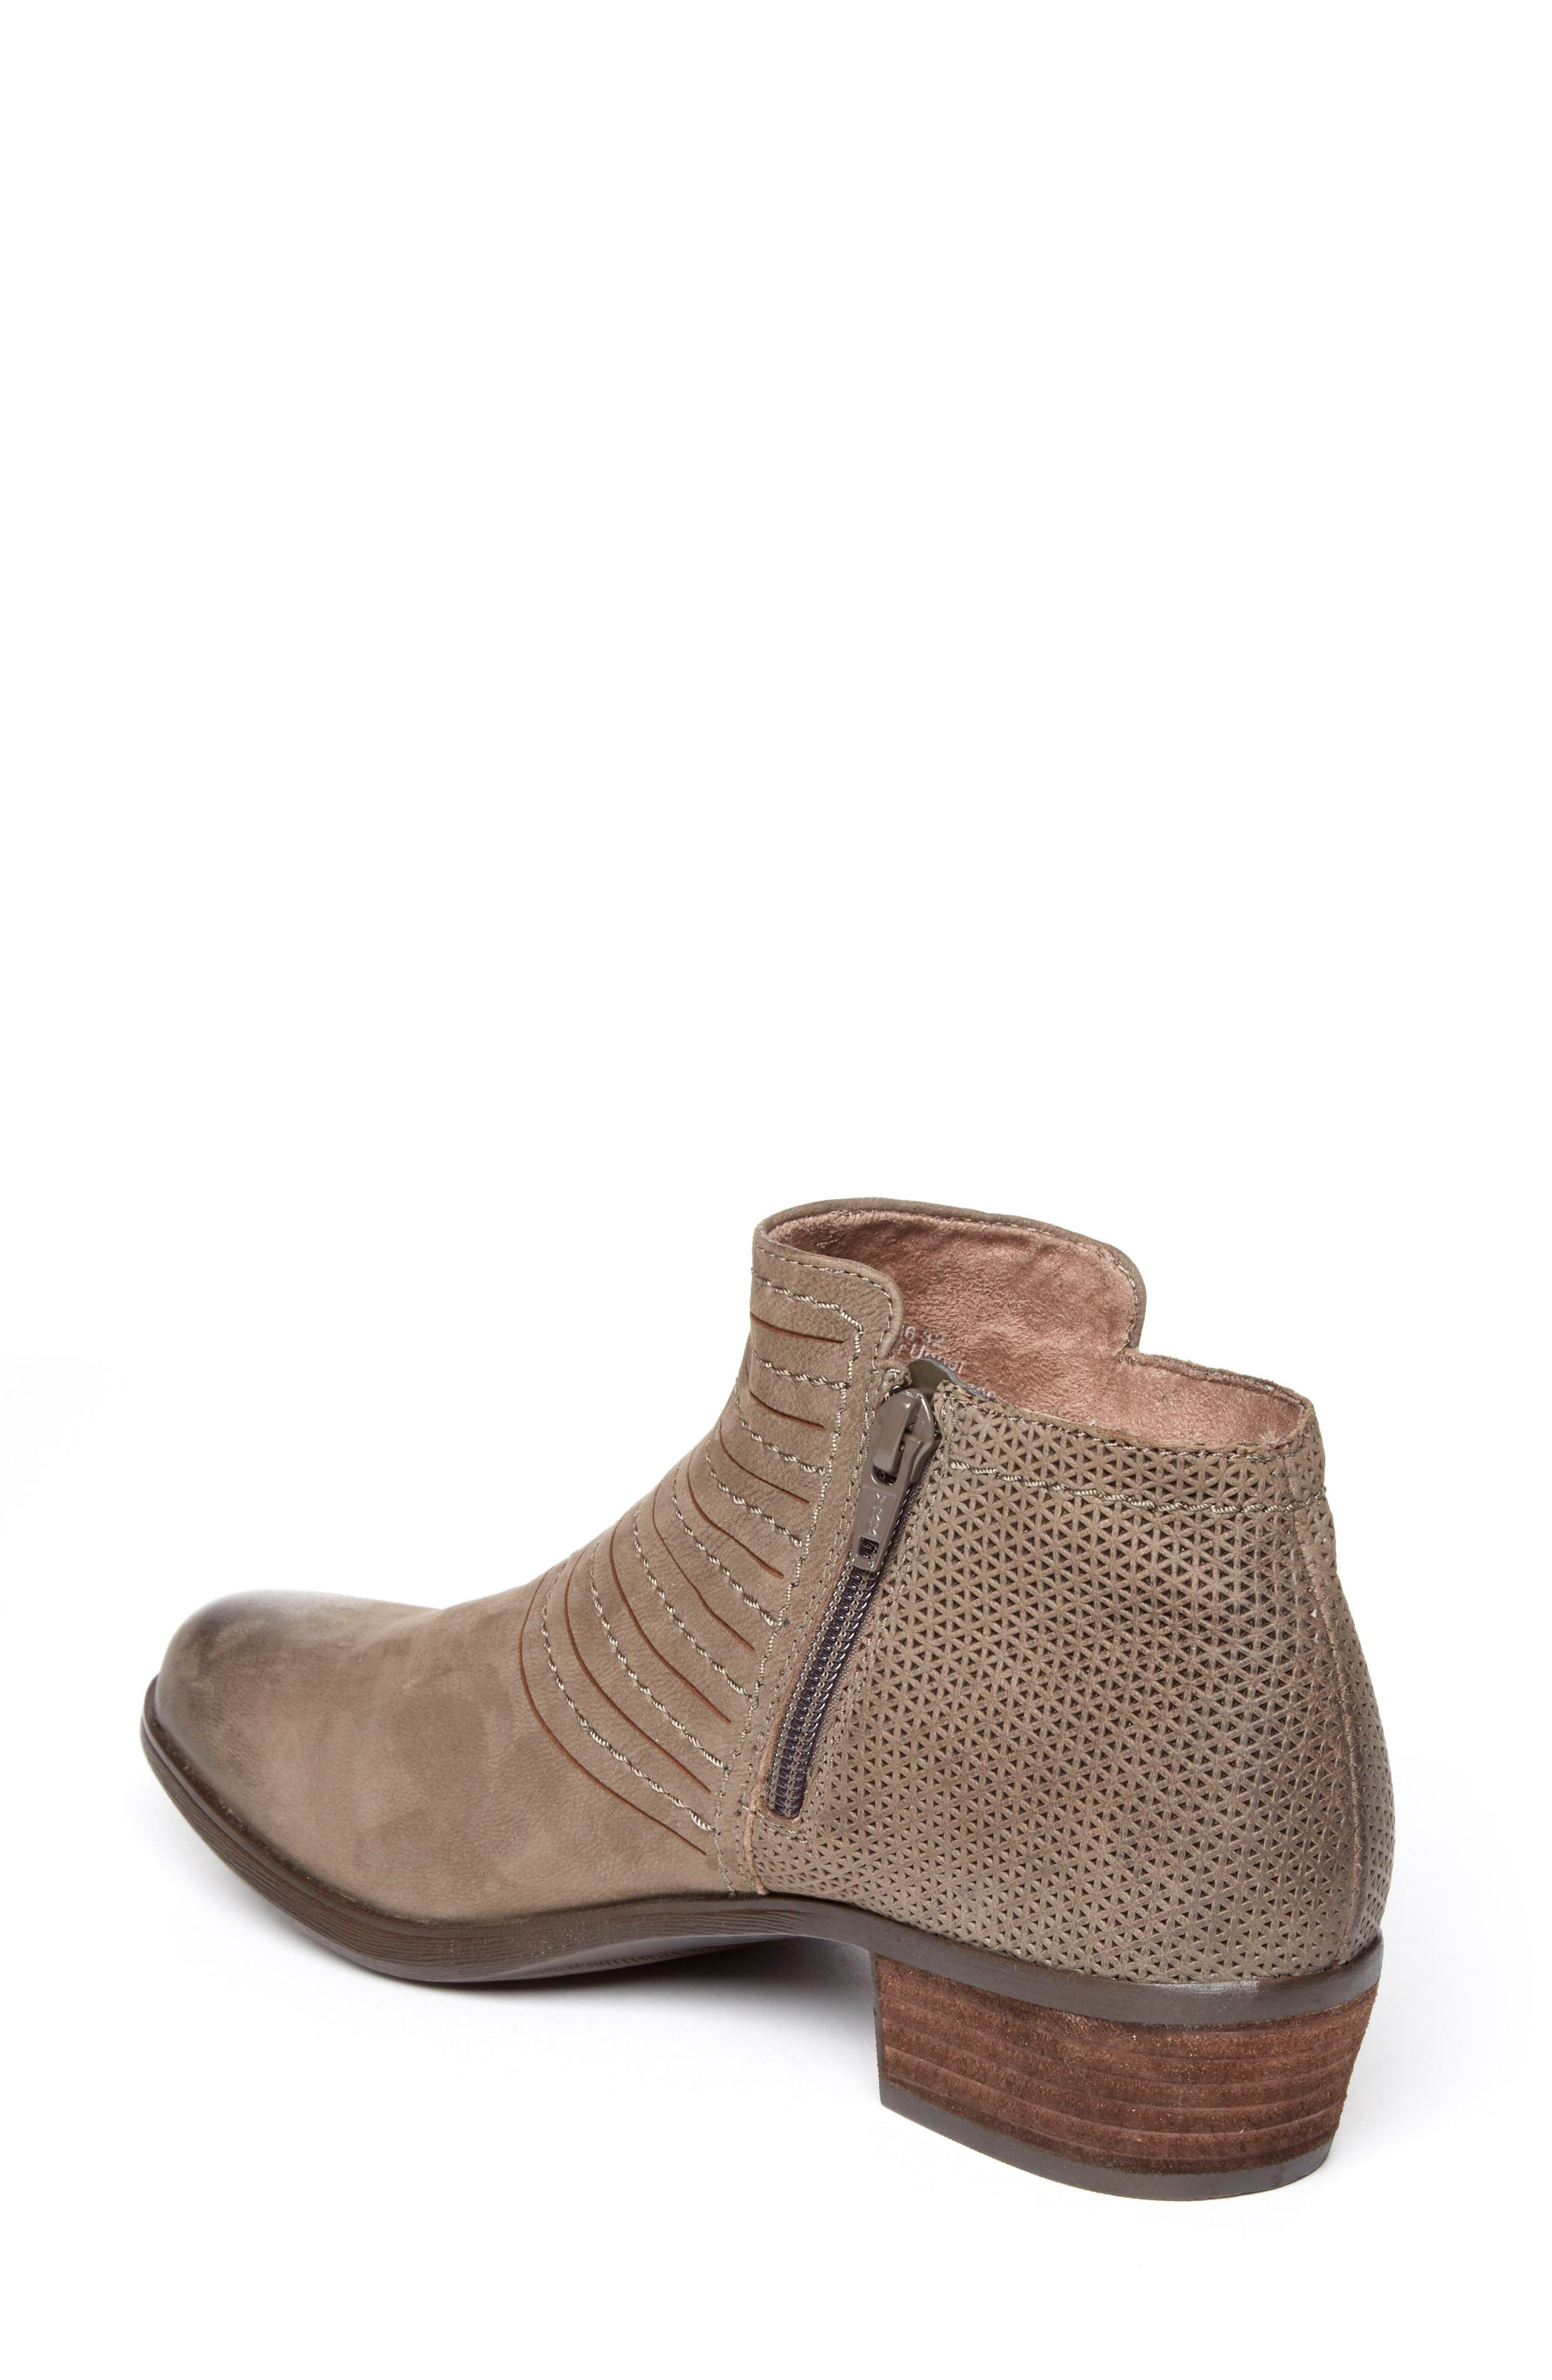 Vanna Strappy Bootie,                             Alternate thumbnail 2, color,                             Olive Grey Nubuck